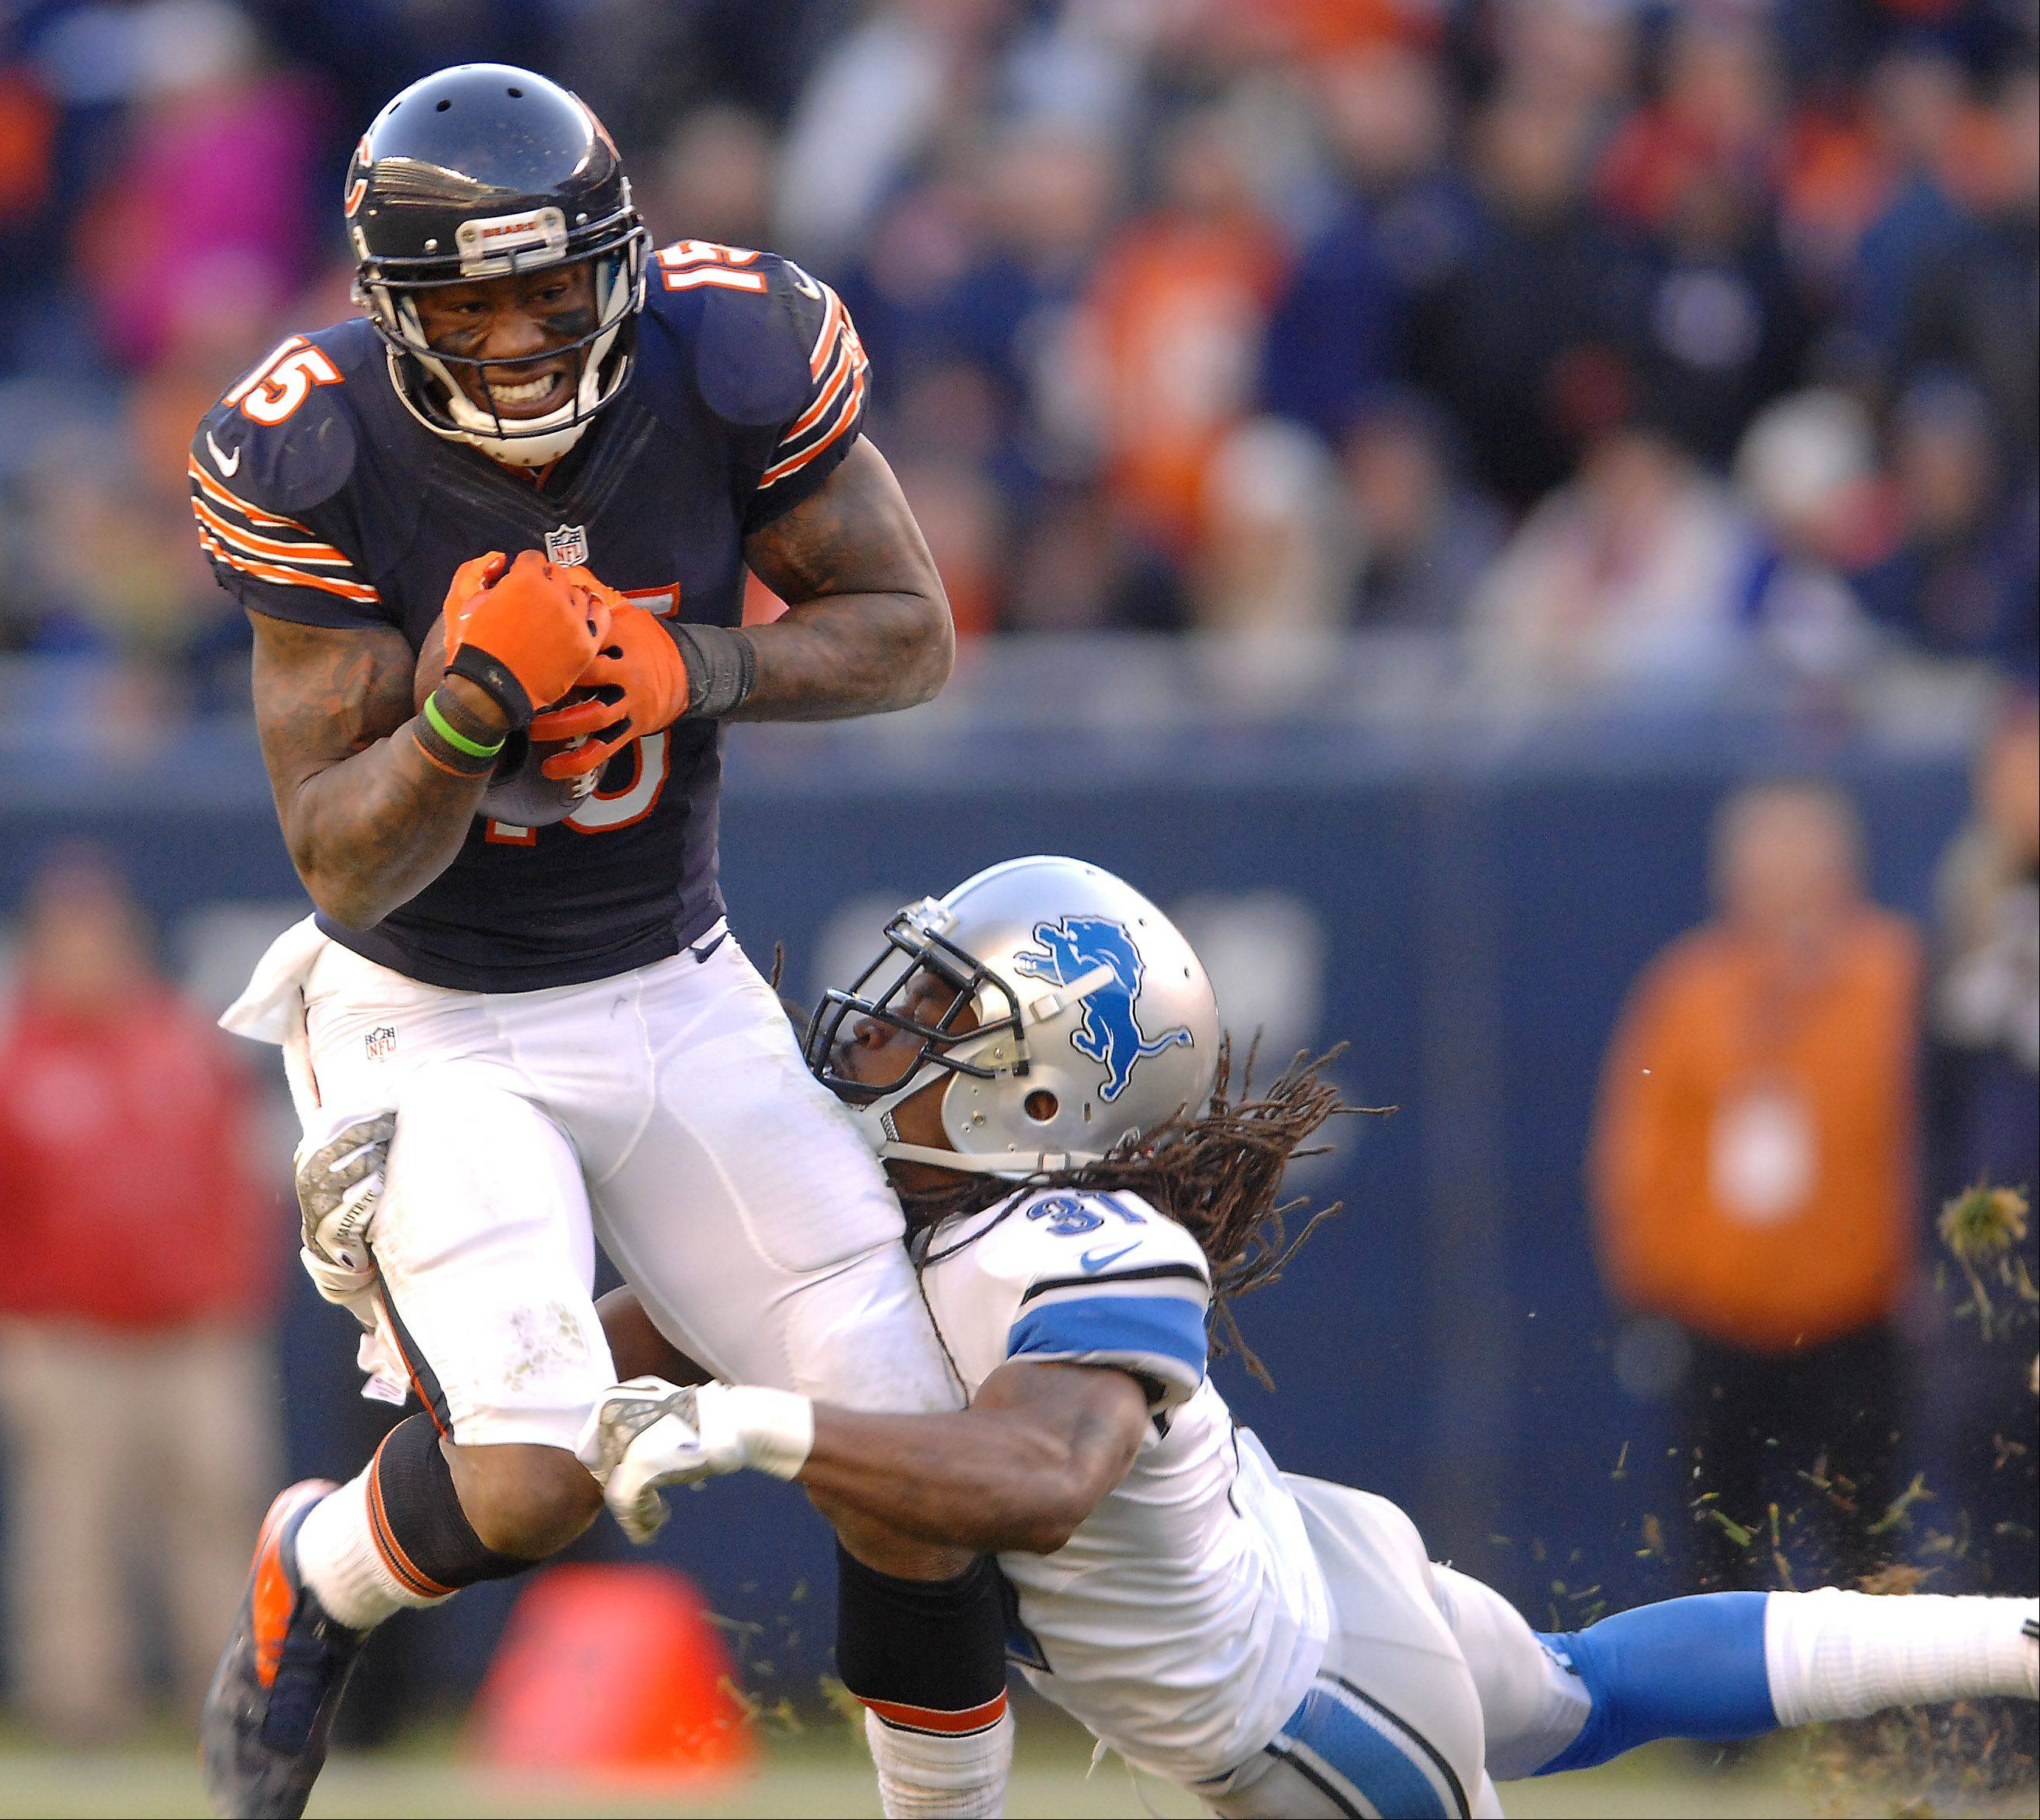 Chicago Bears wide receiver Brandon Marshall (15) tries to shake Detroit Lions cornerback Rashean Mathis (31) after a reception on the Bears final drive during Sunday's game in Chicago.